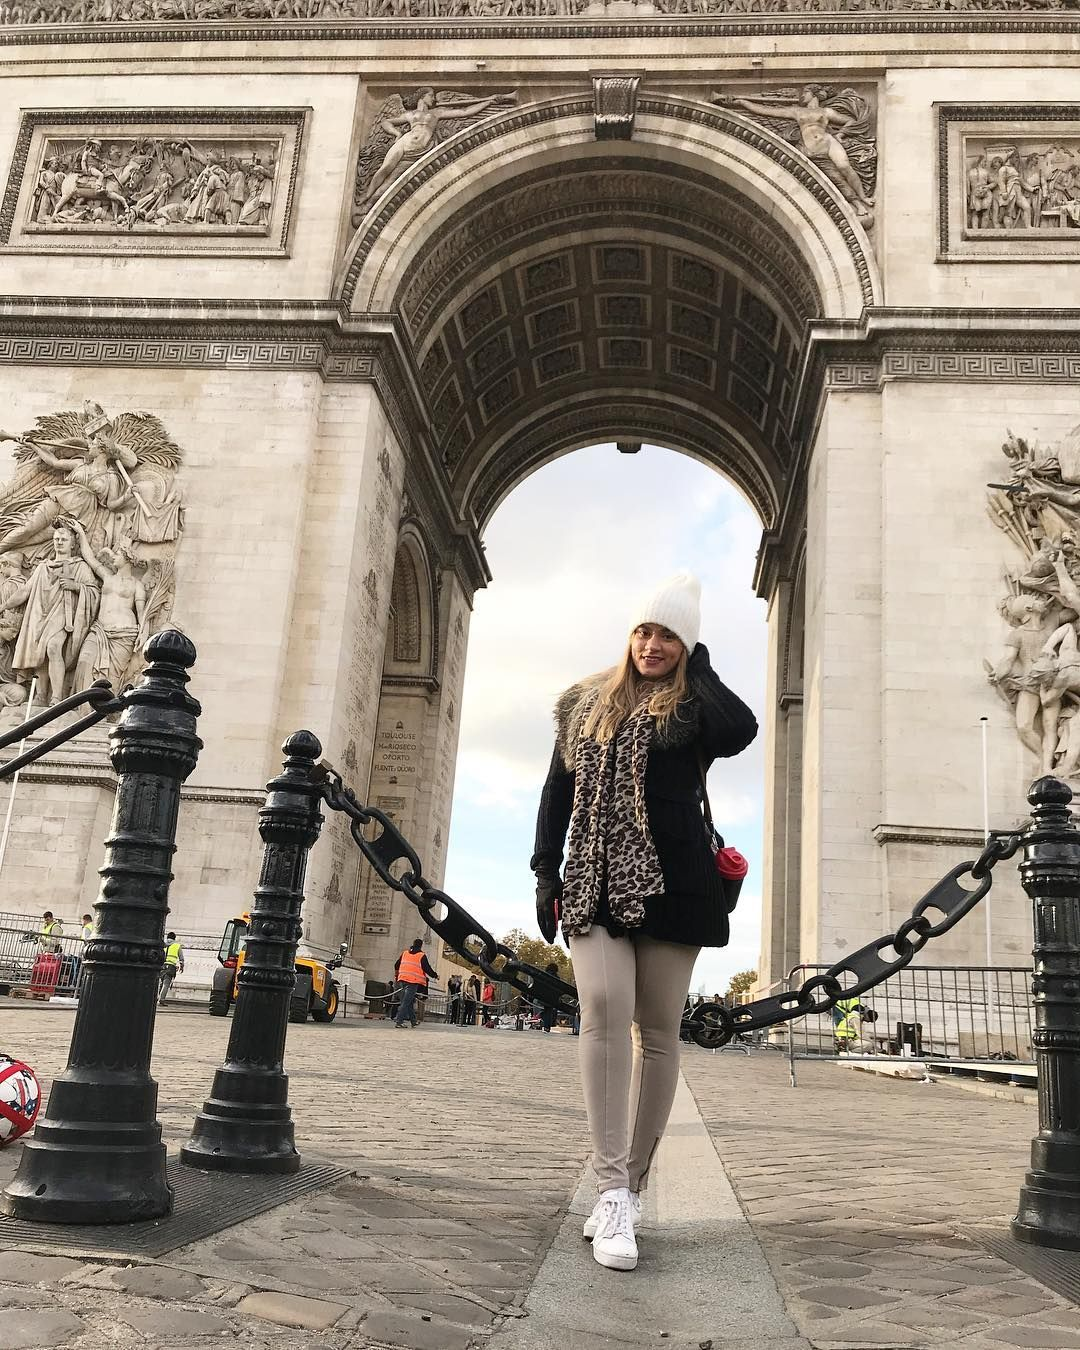 Paris Photo Idea Arc De Triomphe Winter Outfit Fall Outfit Europe Outfit Loving Paris And The Arch Women Motivation Europe Outfits Fashion And Beauty Tips